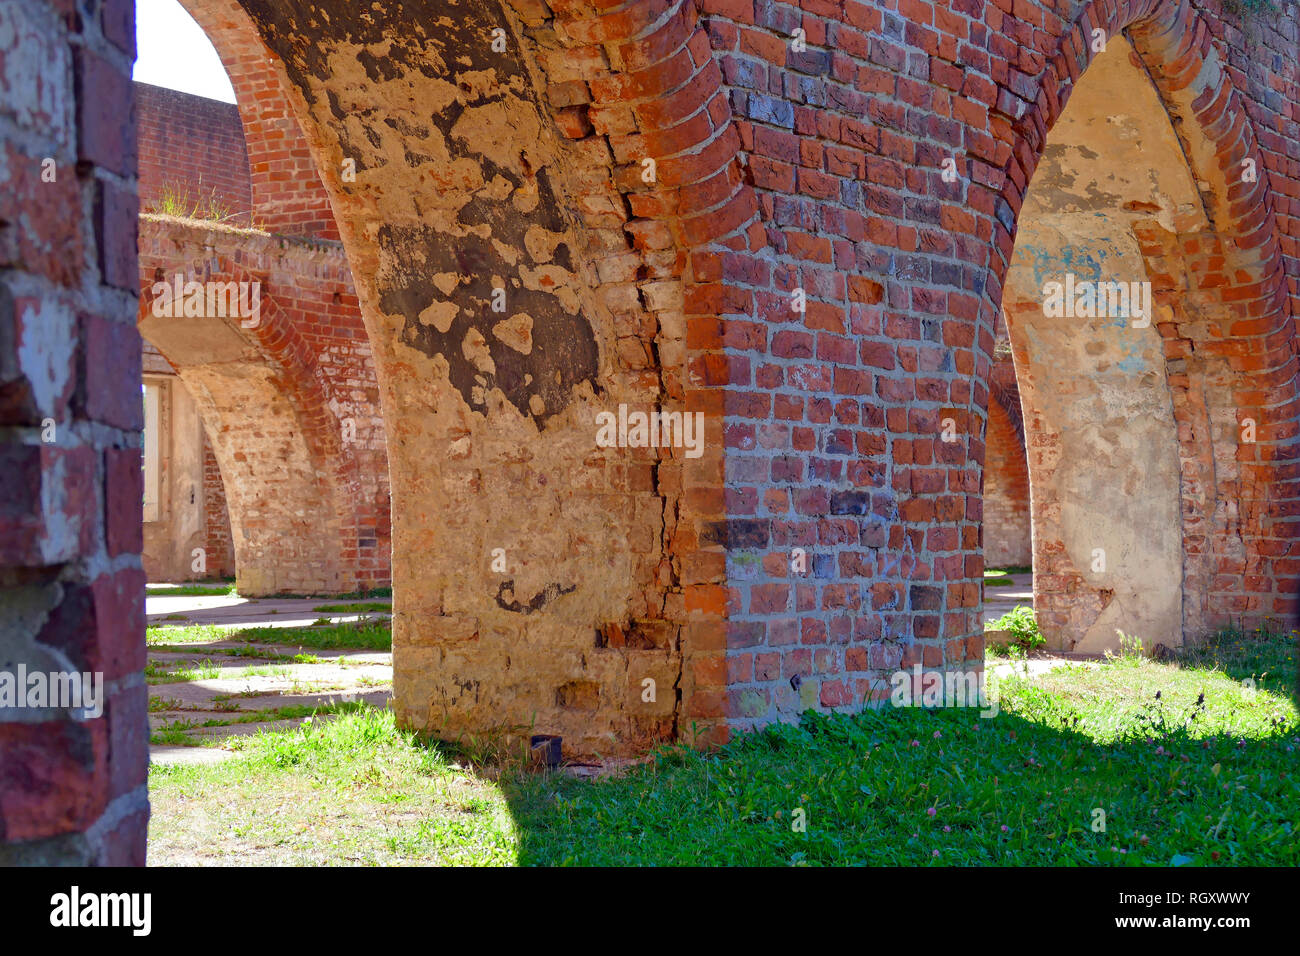 Ruin, monastery, Bad Doberan Landkreis Rostock, Germany, Europe - Stock Image